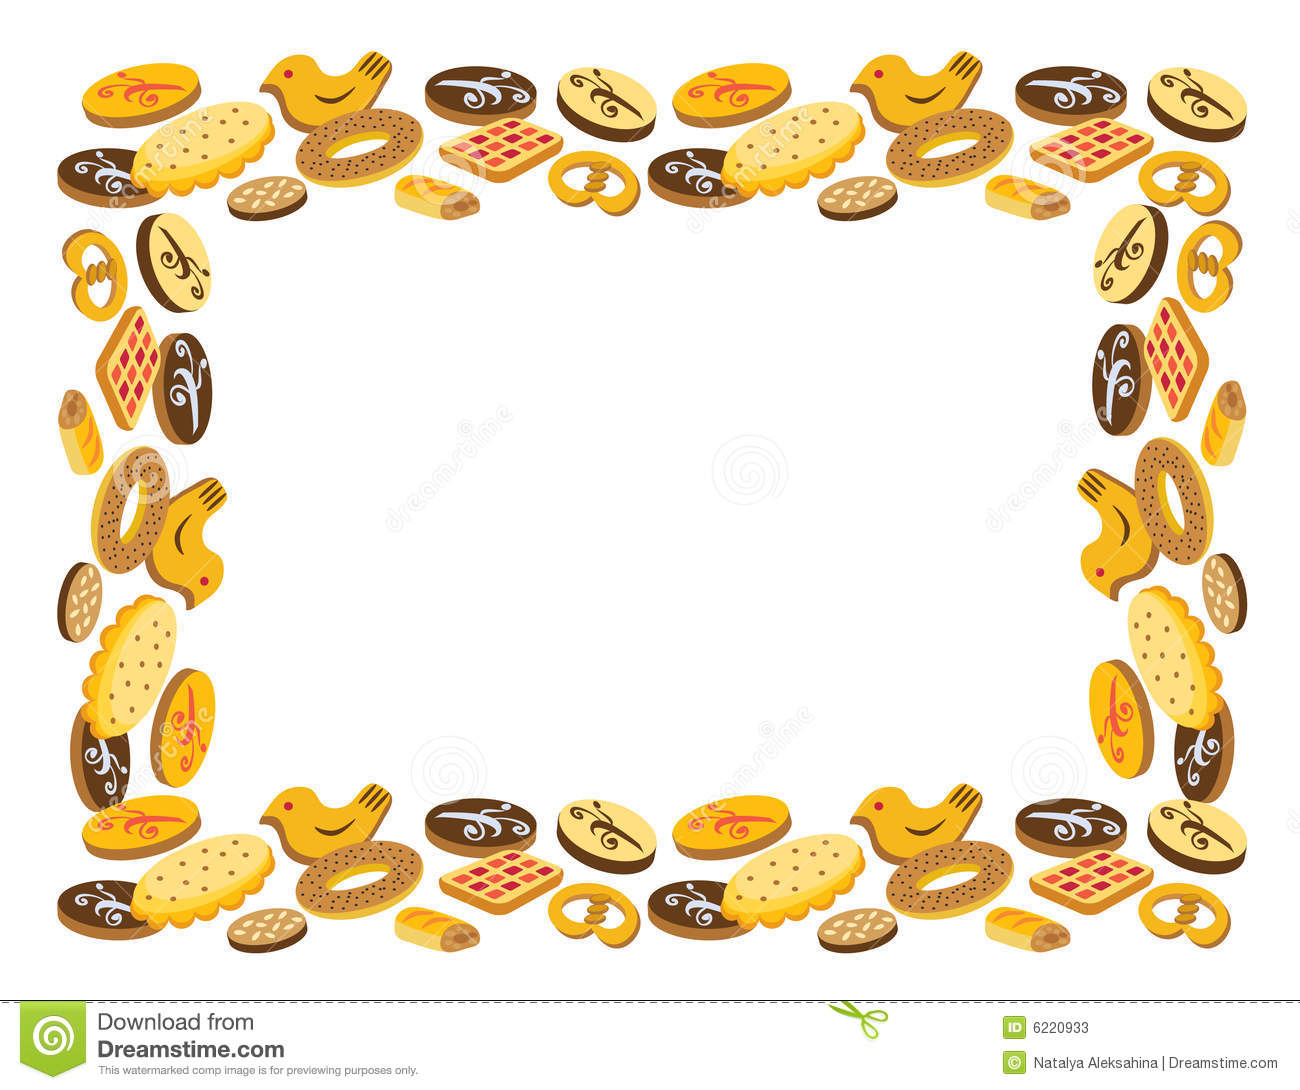 Cookie pencil and in. Bakery clipart frame